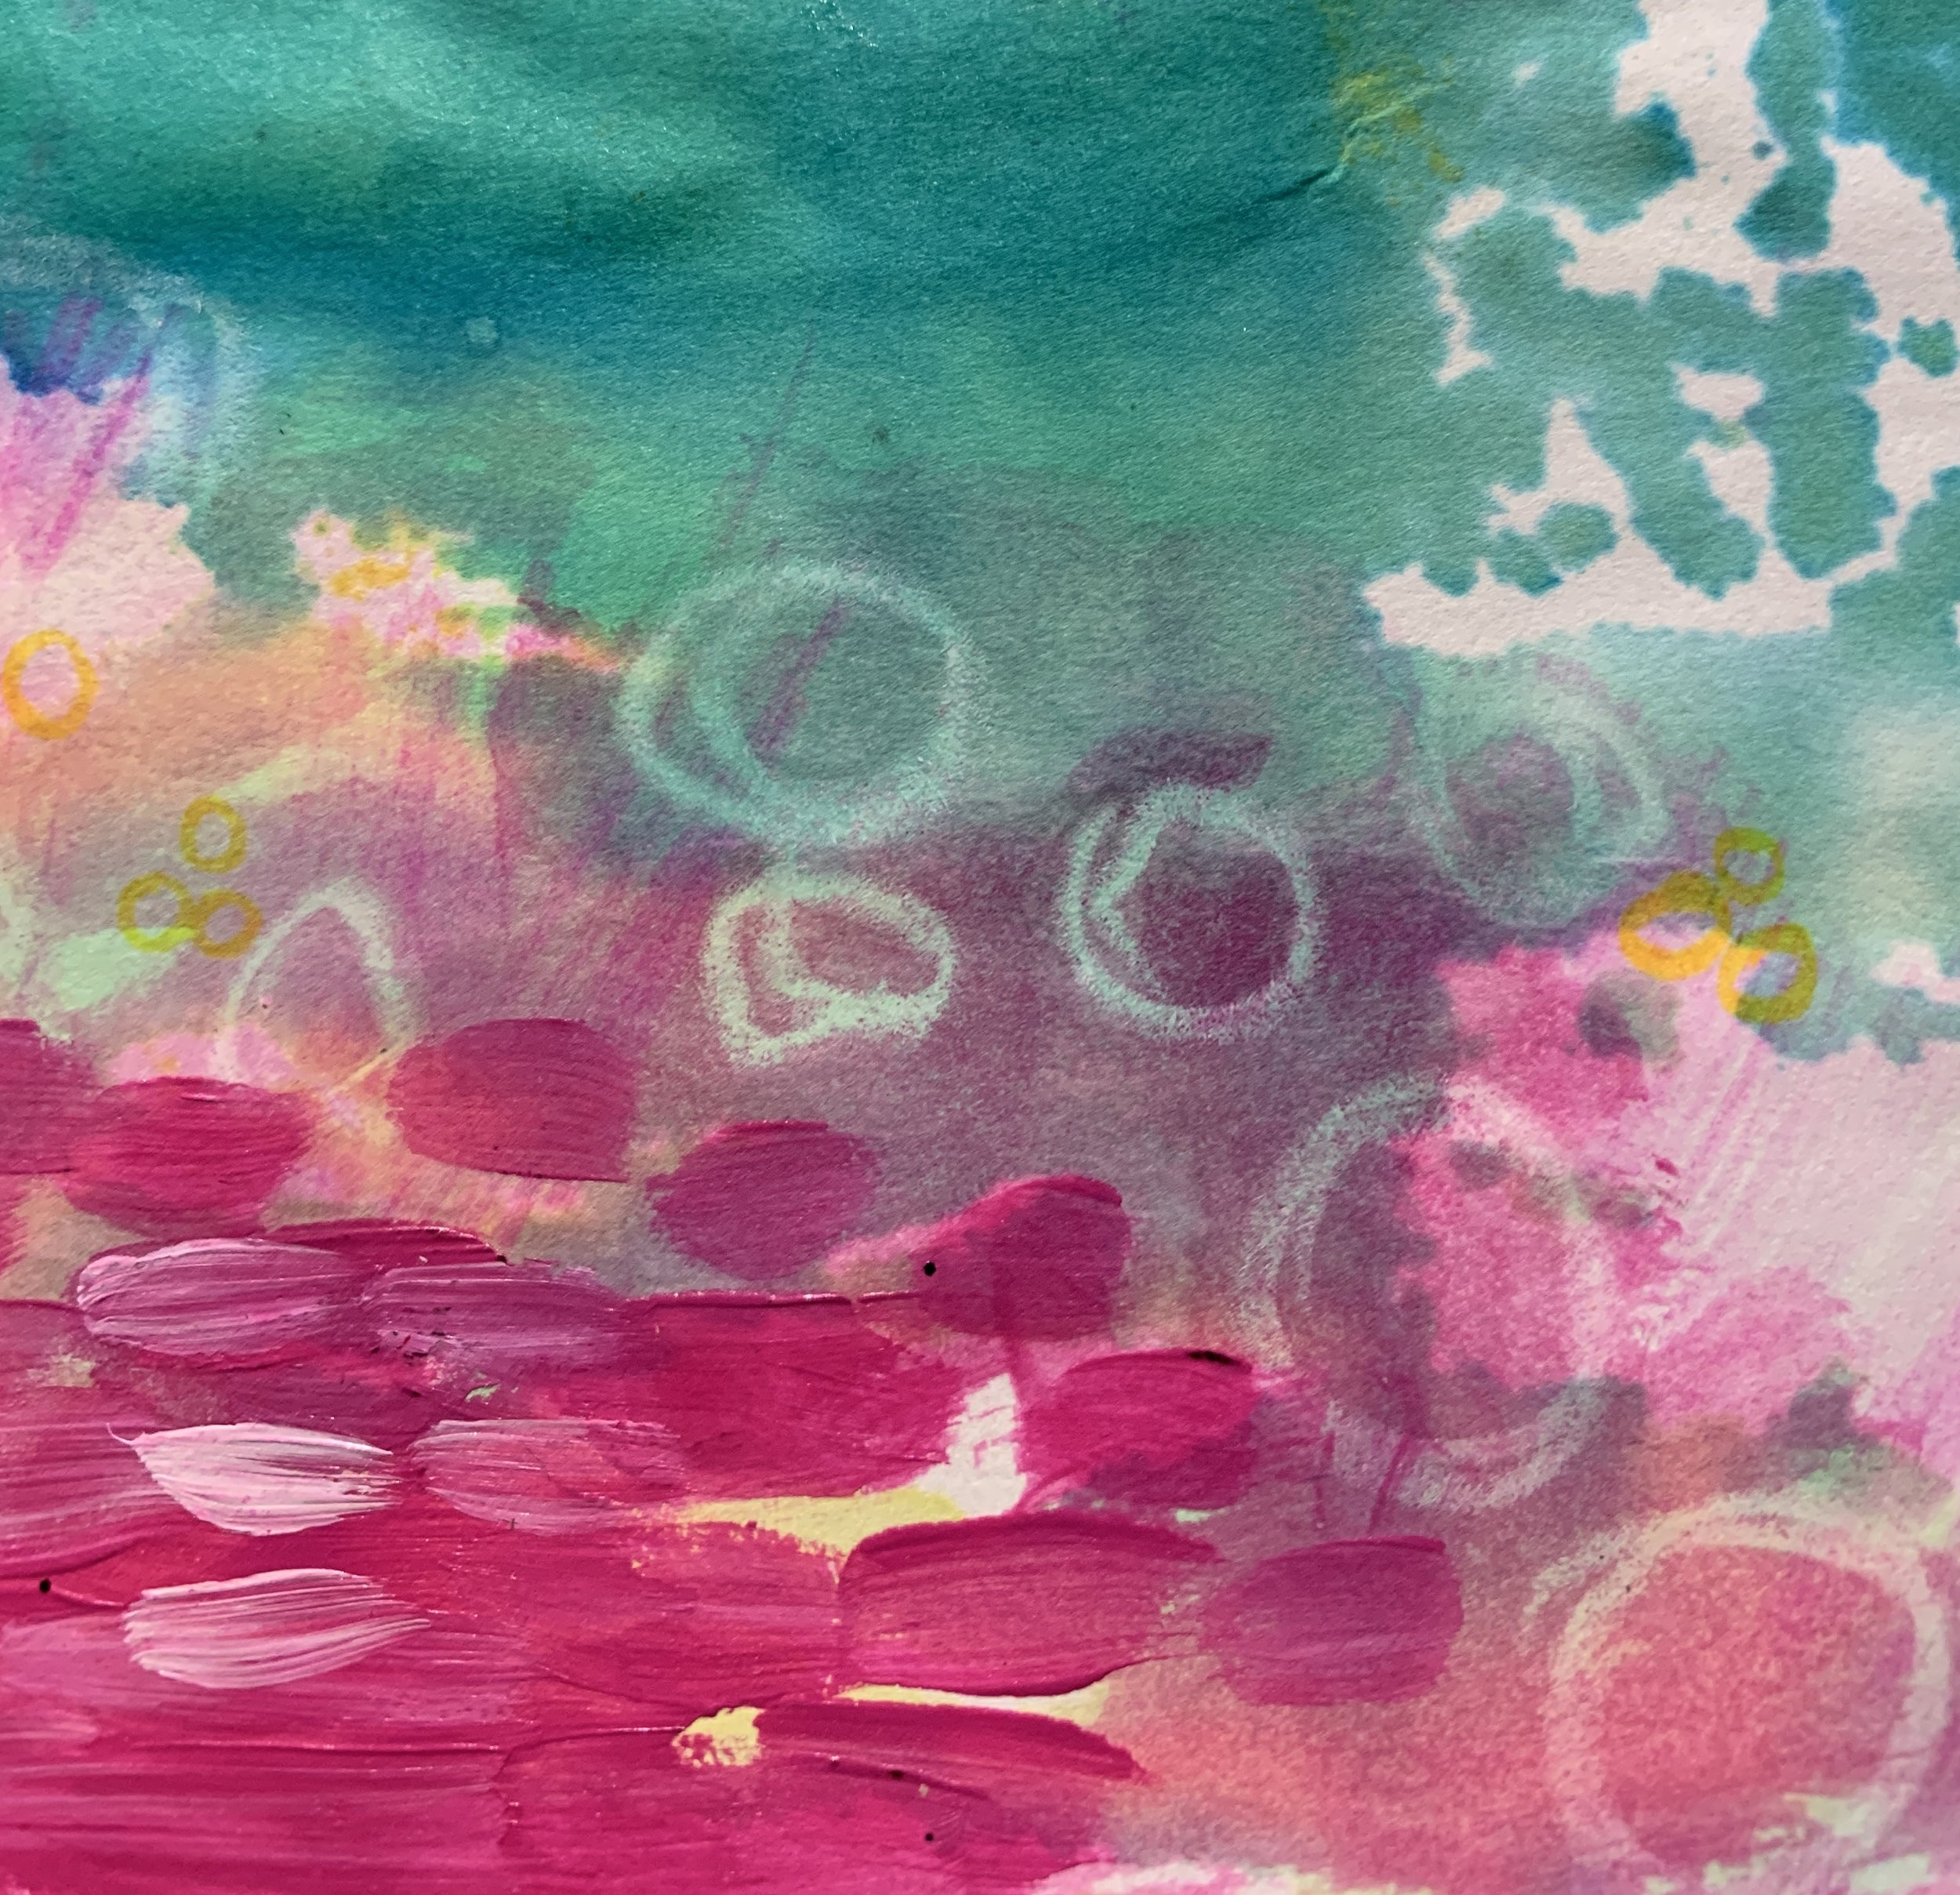 Close up photo of magenta brush strokes in acrylic paint over wax crayon and watercolor. Image color goes from magenta to emerald green.